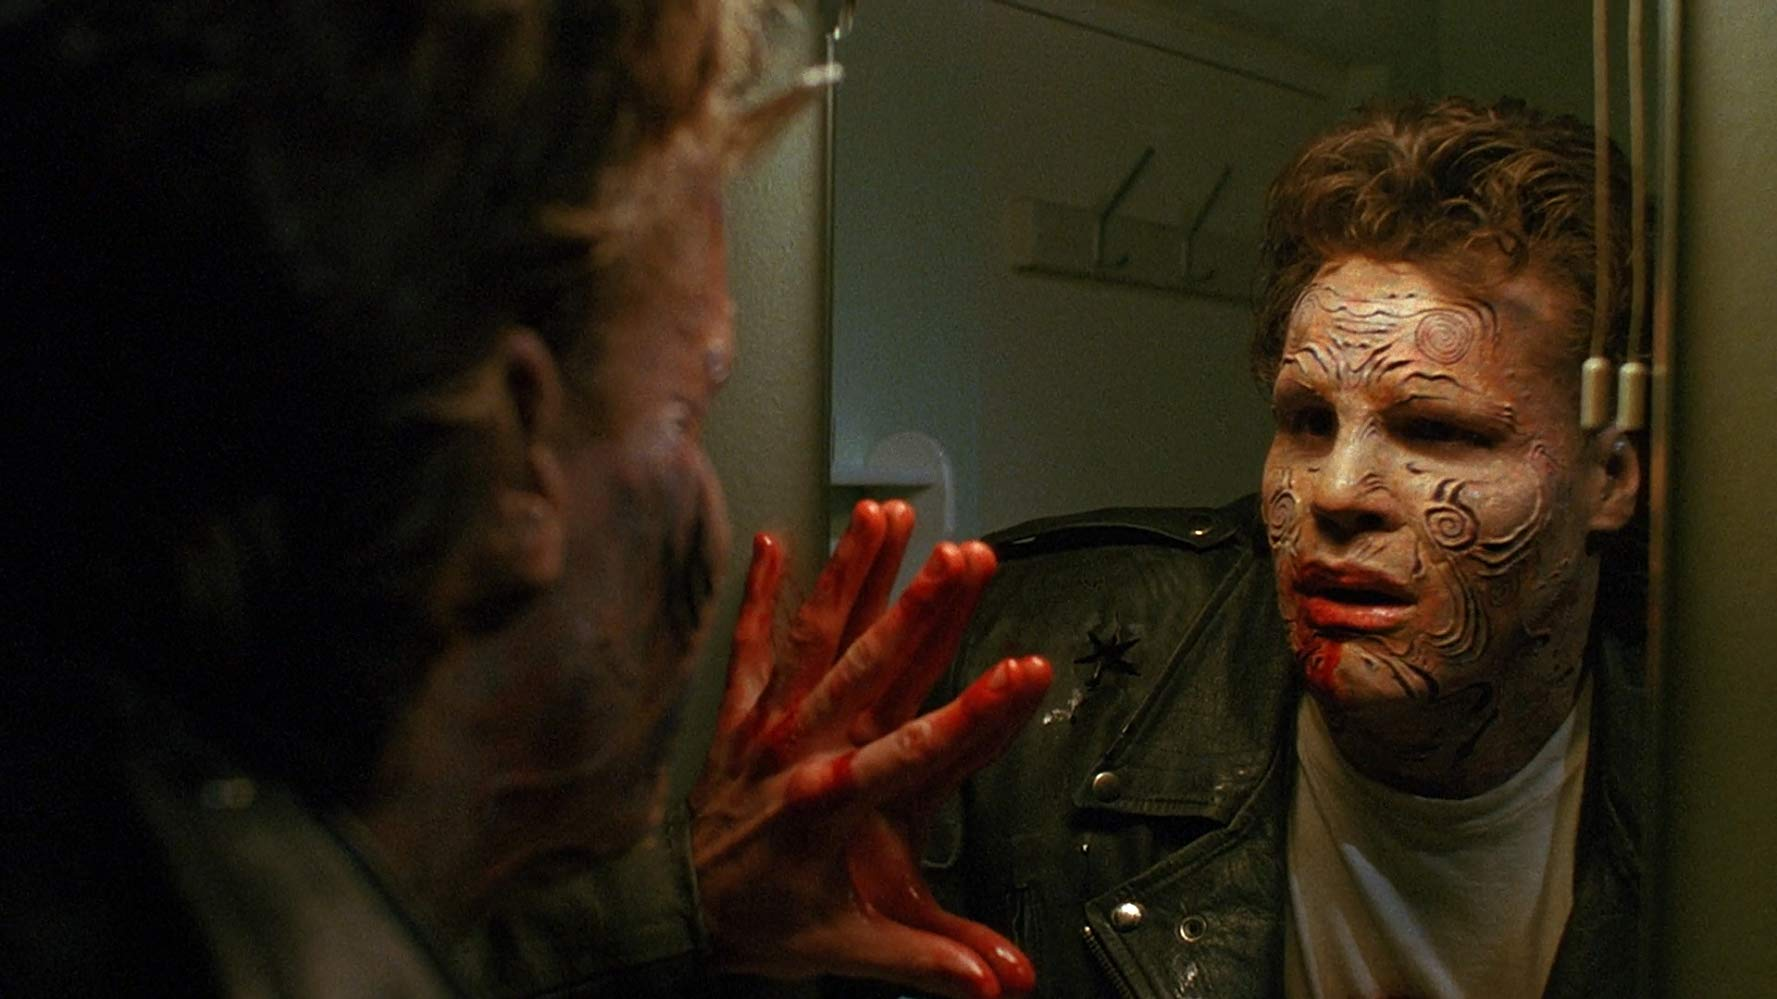 Boone (Craig Sheffer) discovers he is transforming into a monster in Nightbreed (1990)